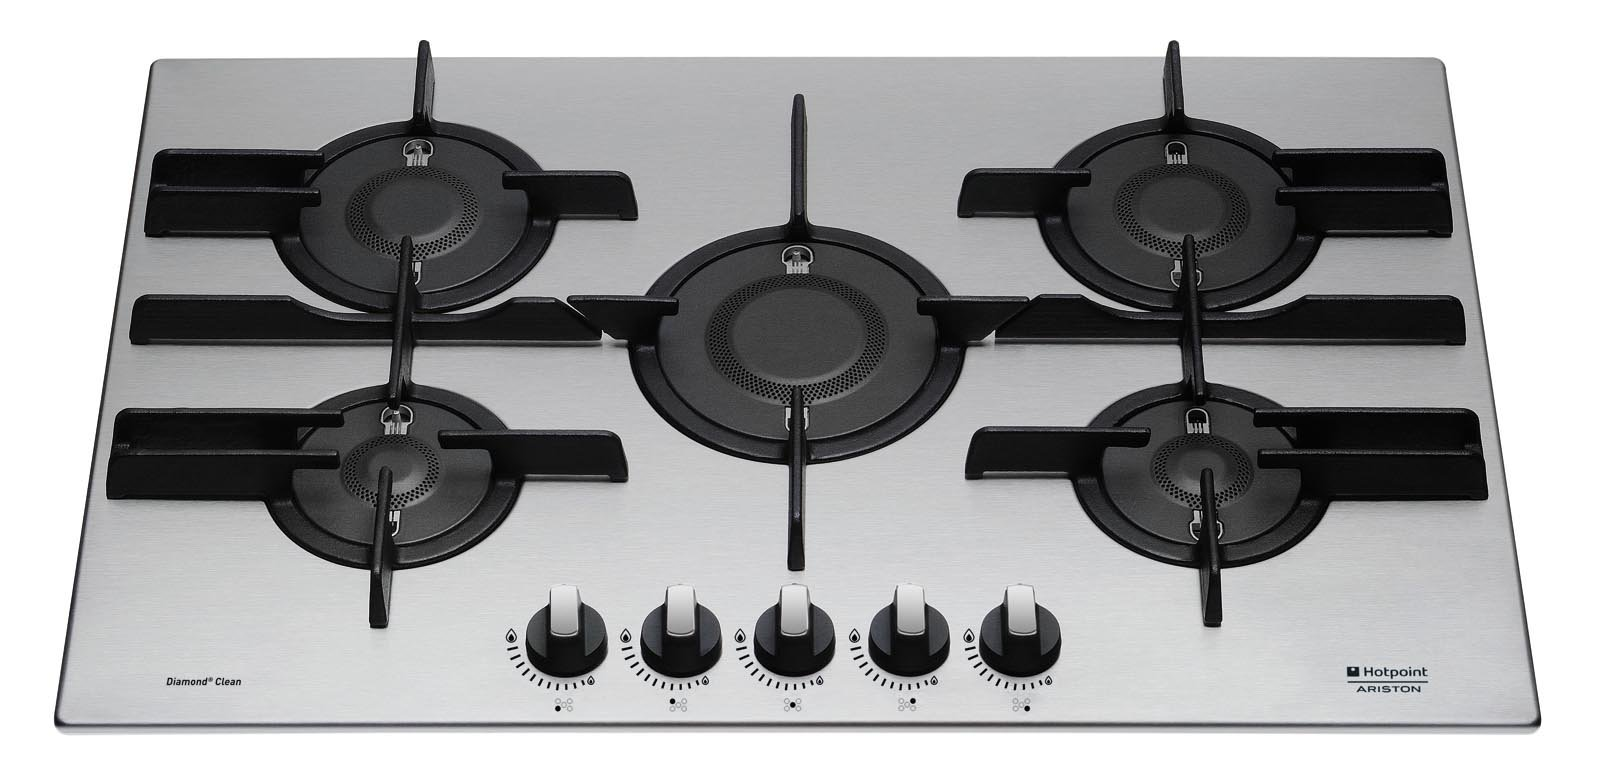 ricambi accessori cucine a gas ariston. 1 serie spartifiamma ...